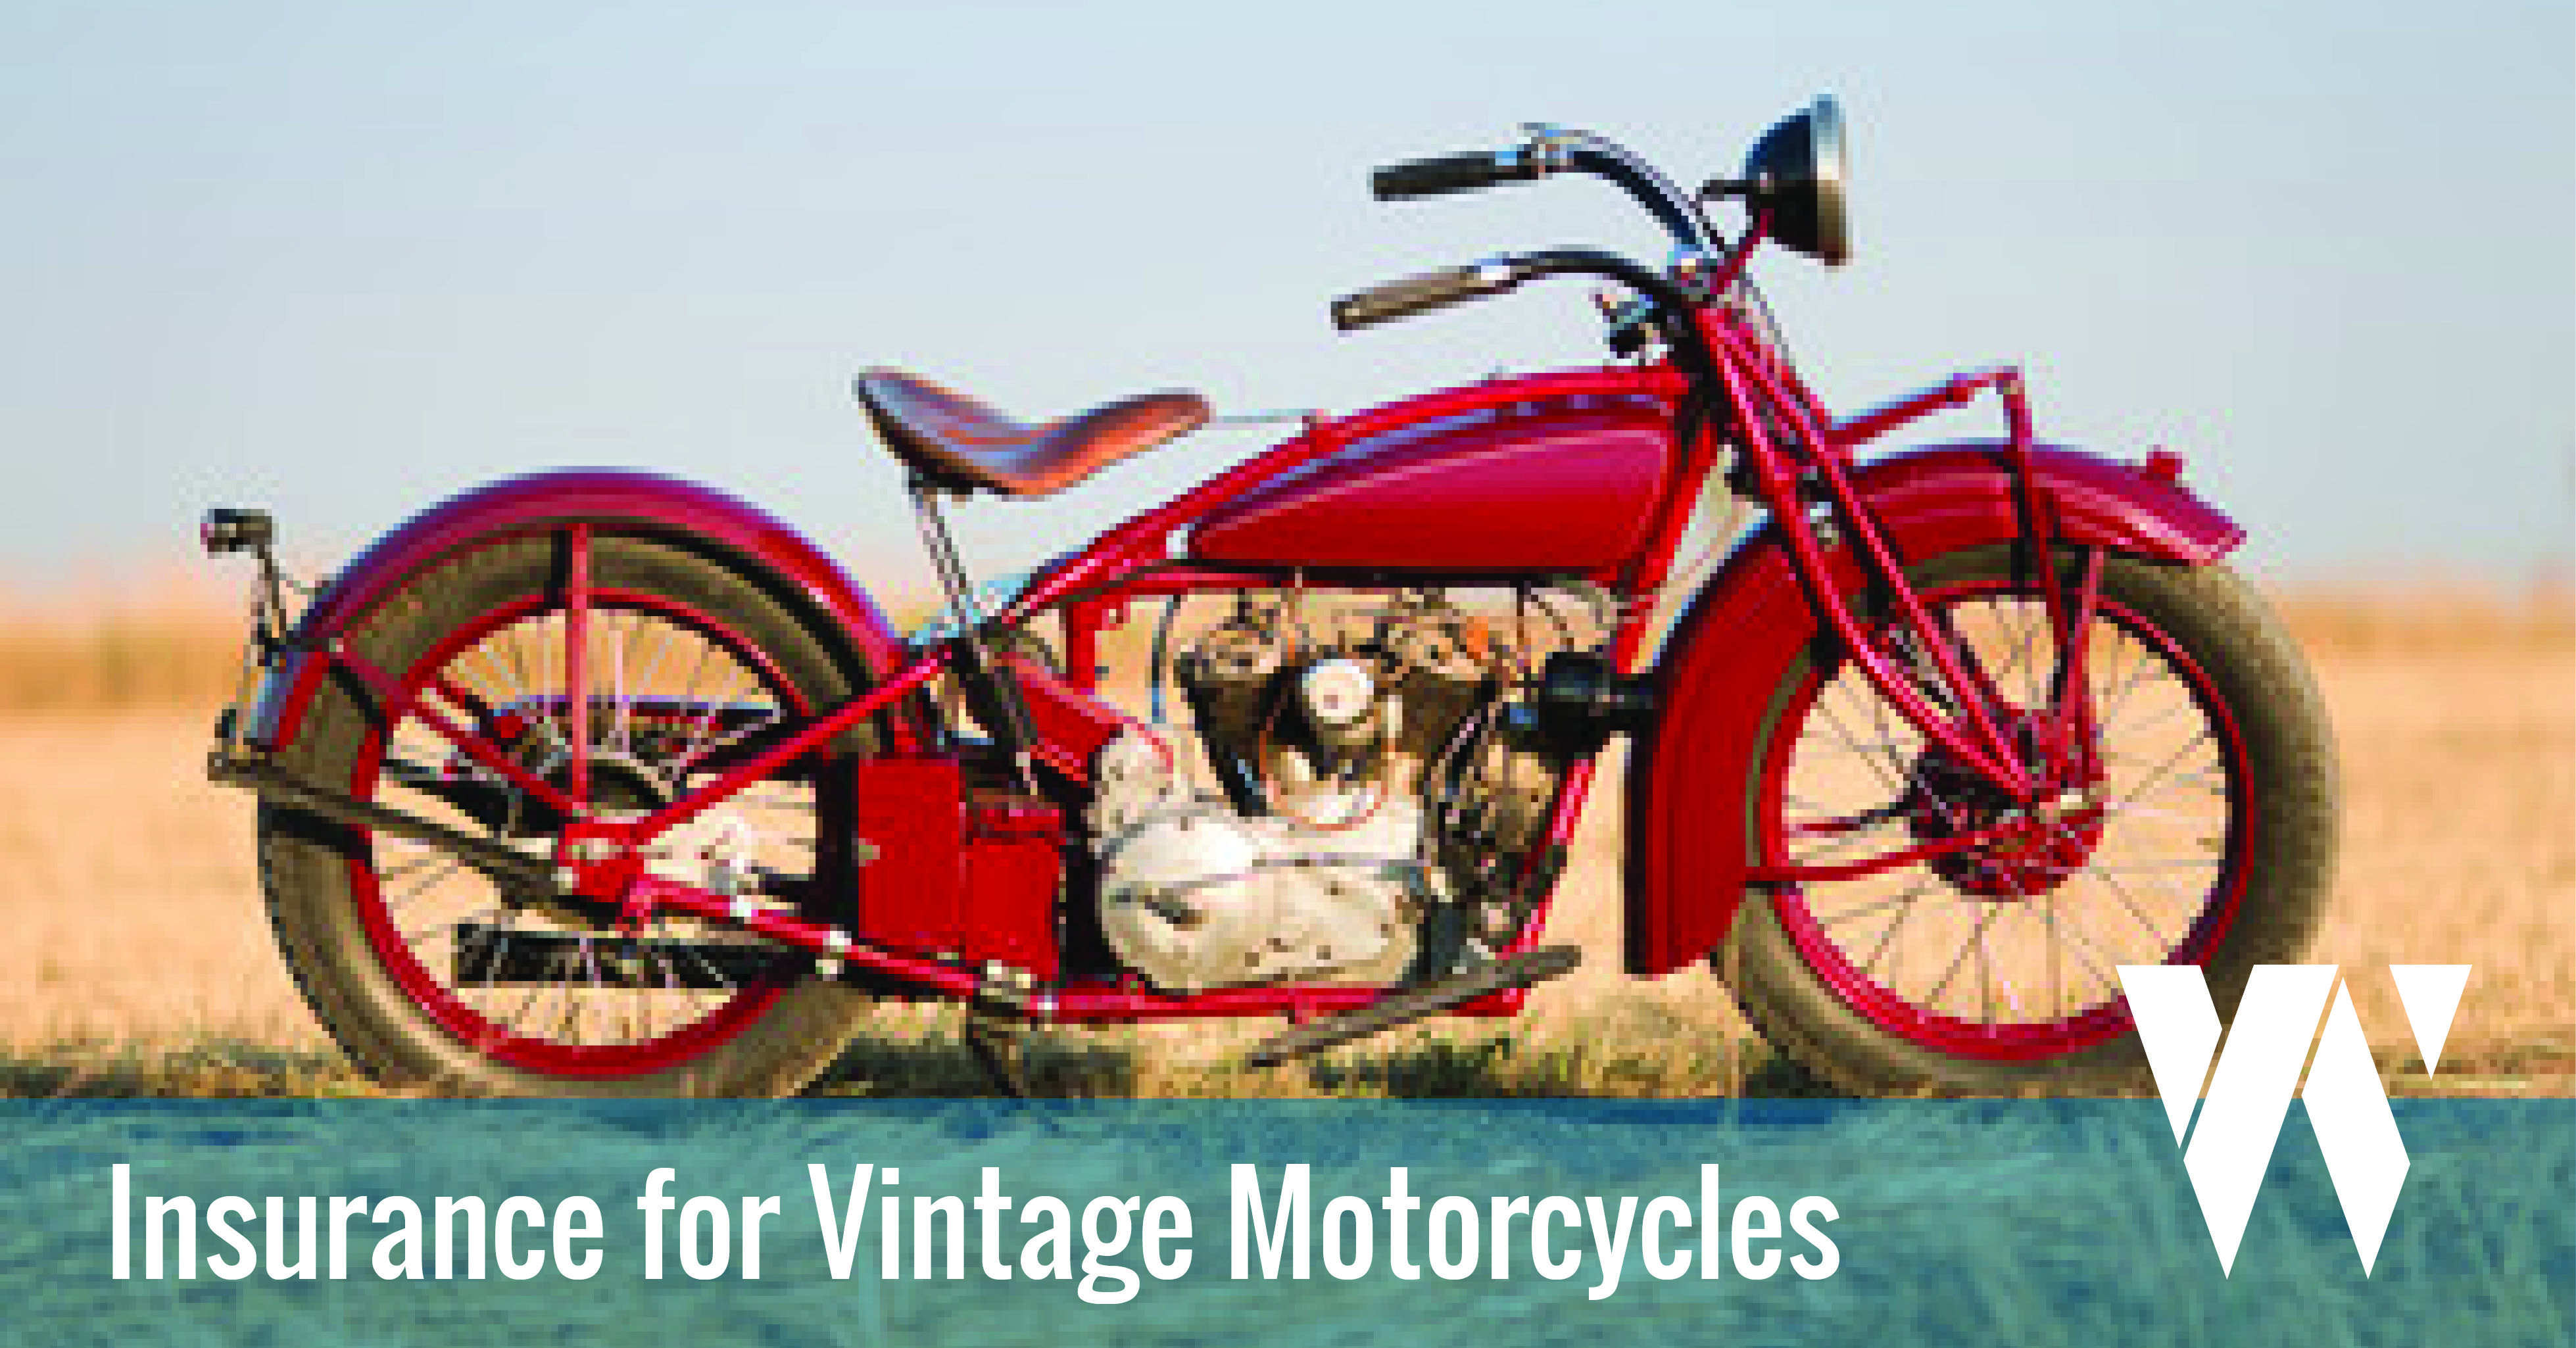 TuesdayTip for vintagemotorcycle owners Walton has a